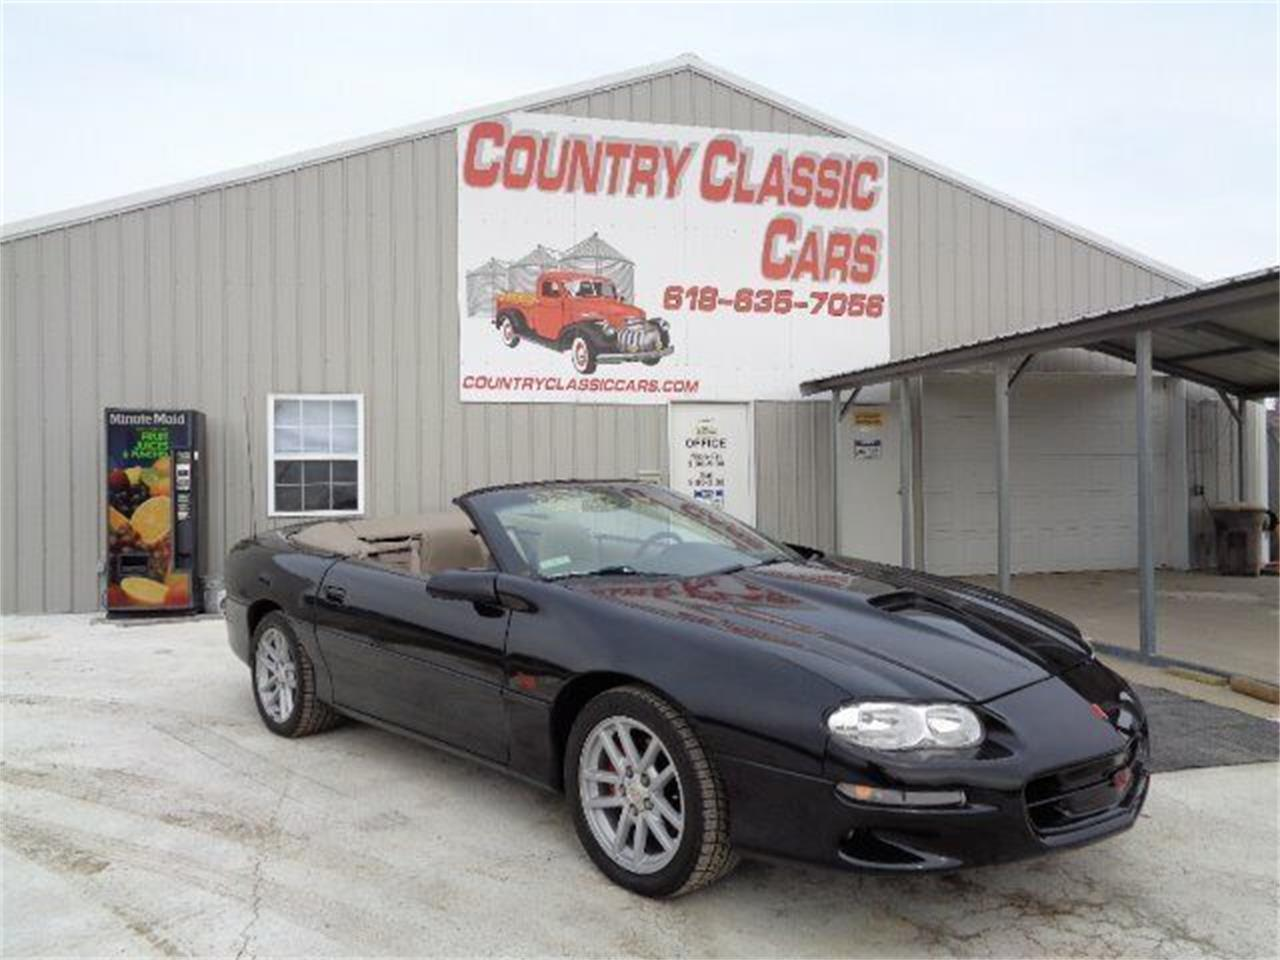 2002 Chevrolet Camaro (CC-1191709) for sale in Staunton, Illinois